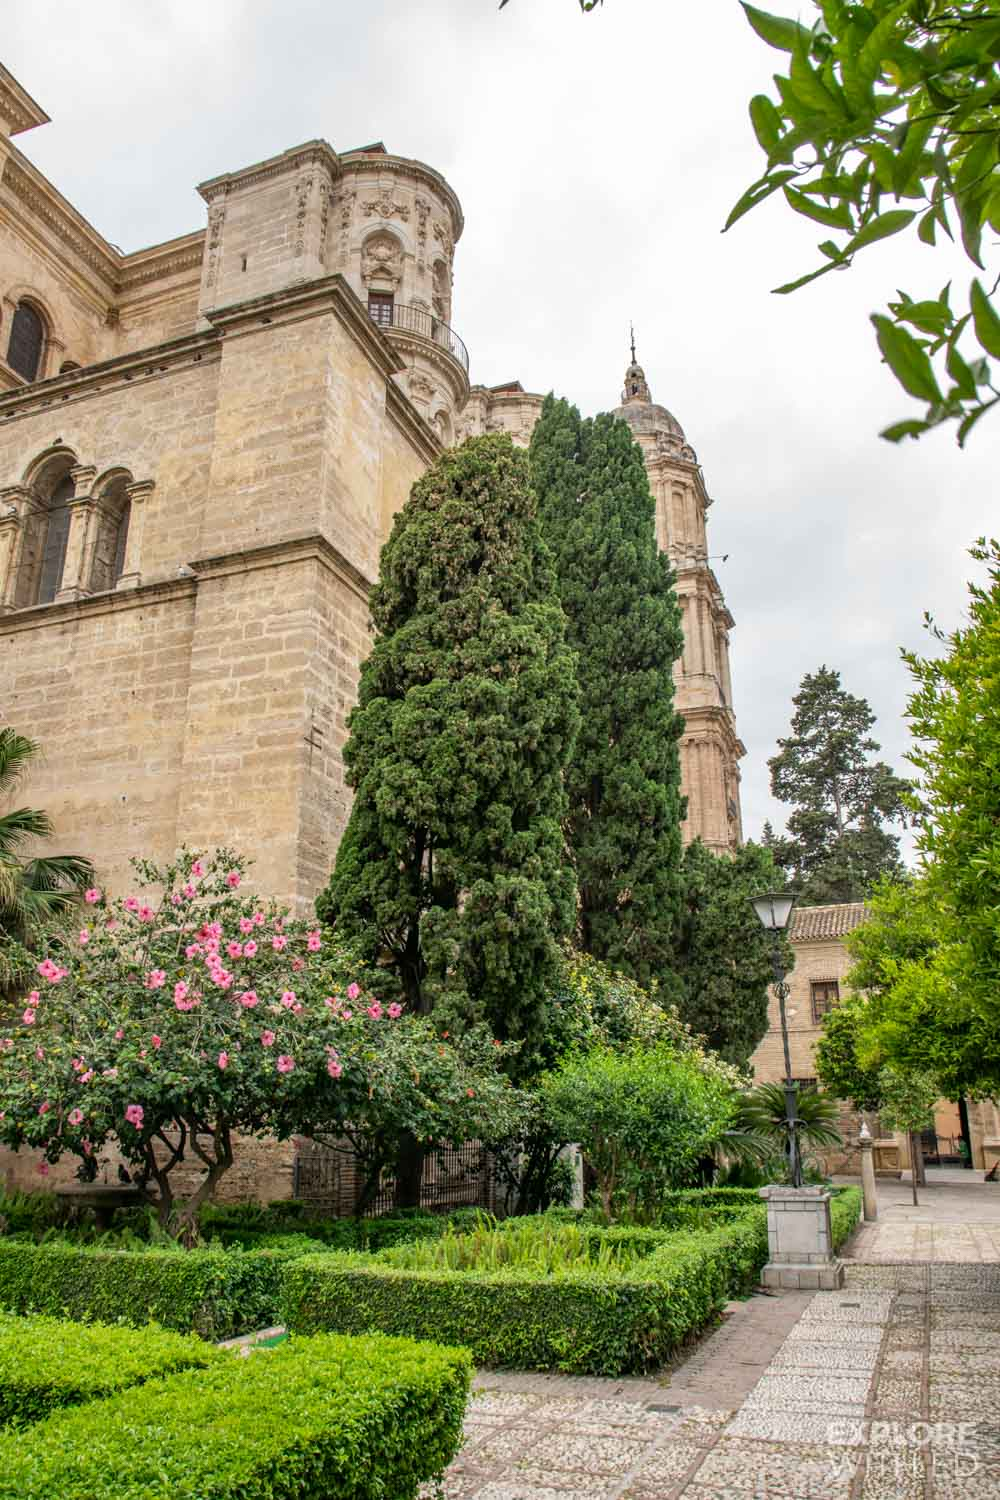 The gardens and exterior of Malaga Cathedral